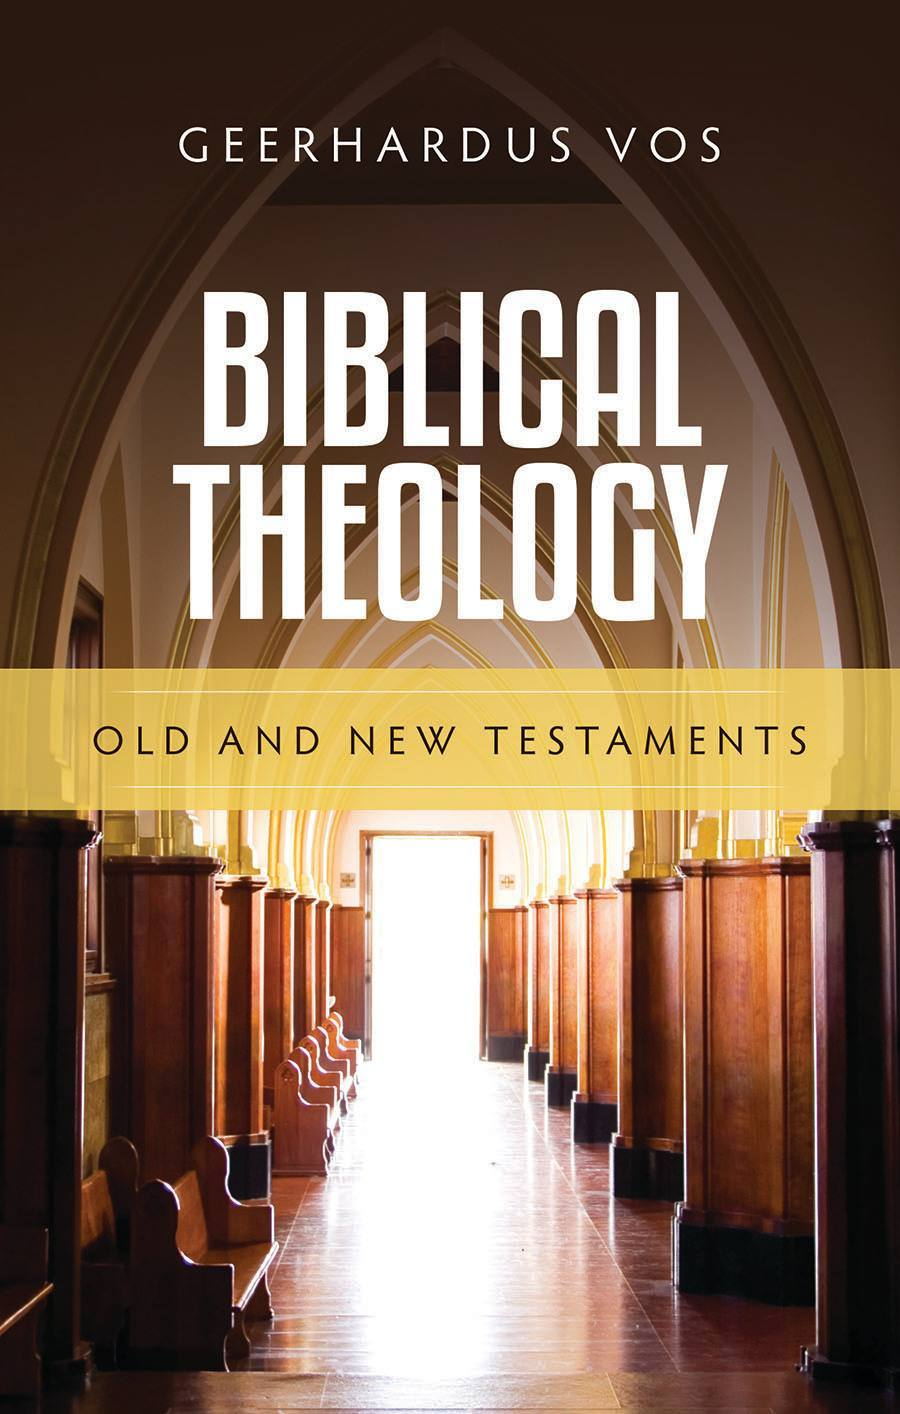 Biblical Theology by Geerhardus Vos